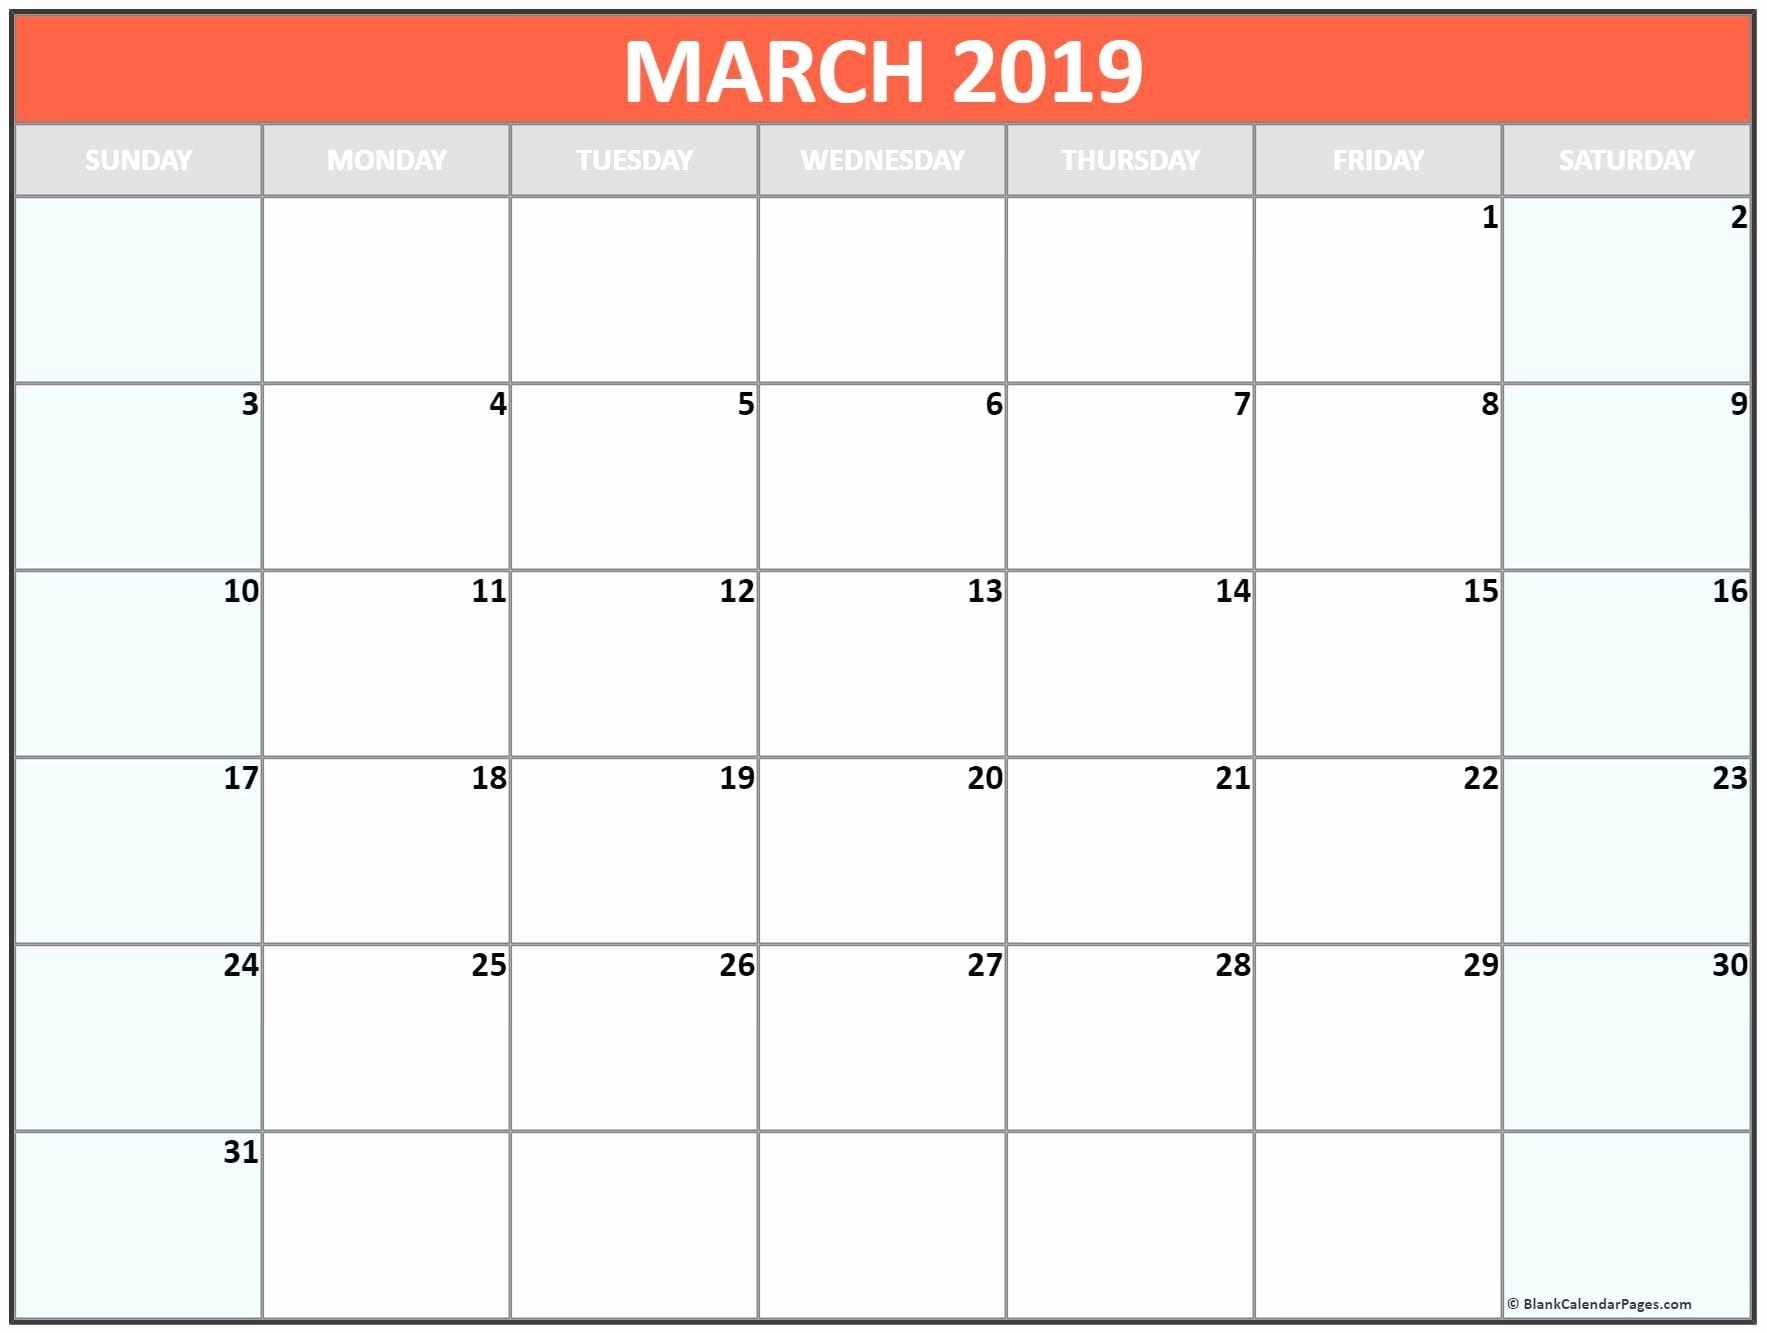 2019 March Calendar Kalnirnay Más Recientes Calendar 2019 Kalnirnay March Of 2019 March Calendar Kalnirnay Más Actual August 2106 Calendar Lara Expolicenciaslatam